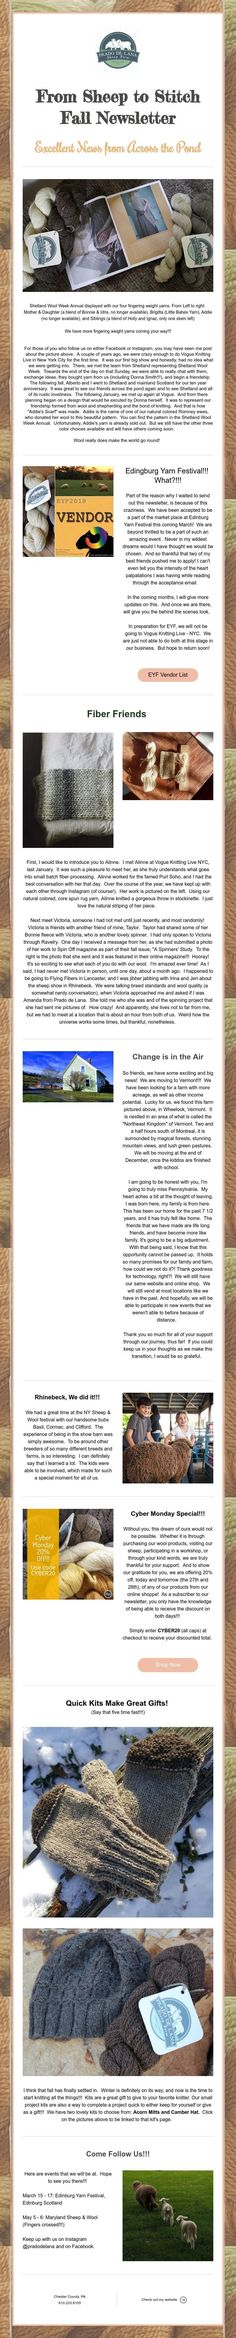 From Sheep to Stitch Fall Newsletter Excellent News from Across the Pond